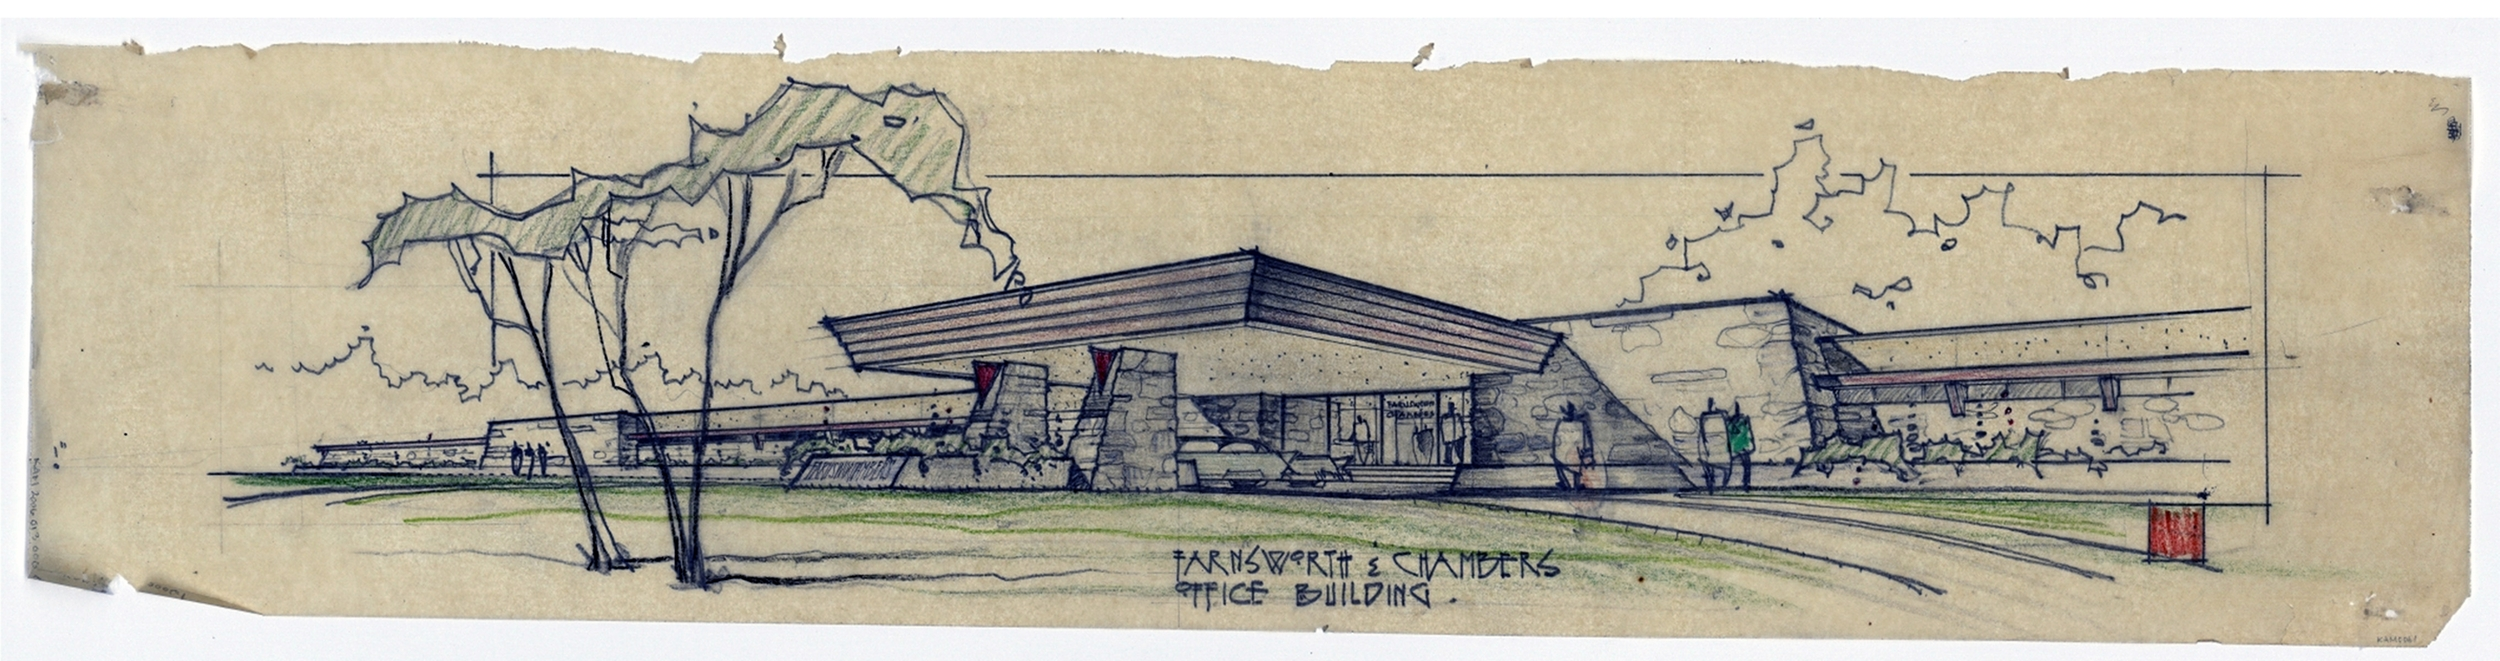 Perspective drawing by architectural firm MacKie & Kamrath shows the vast horizontal planes and the natural materials that evoke Frank Lloyd Wright's architectural principles.